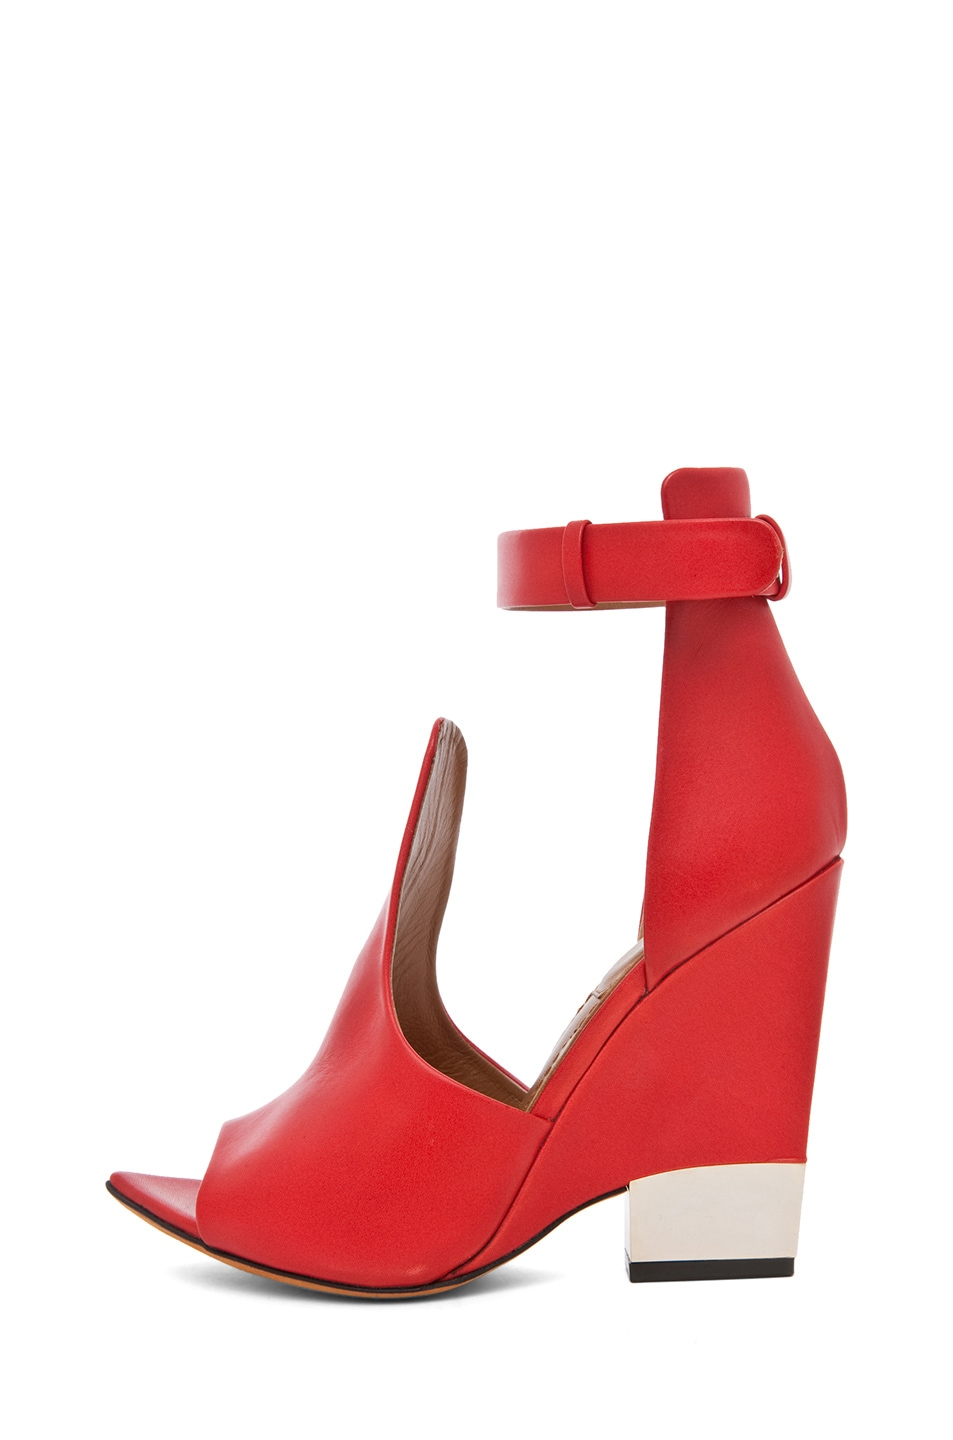 Image 1 of GIVENCHY Podium Ankle Strap Sandal in Nappa Red